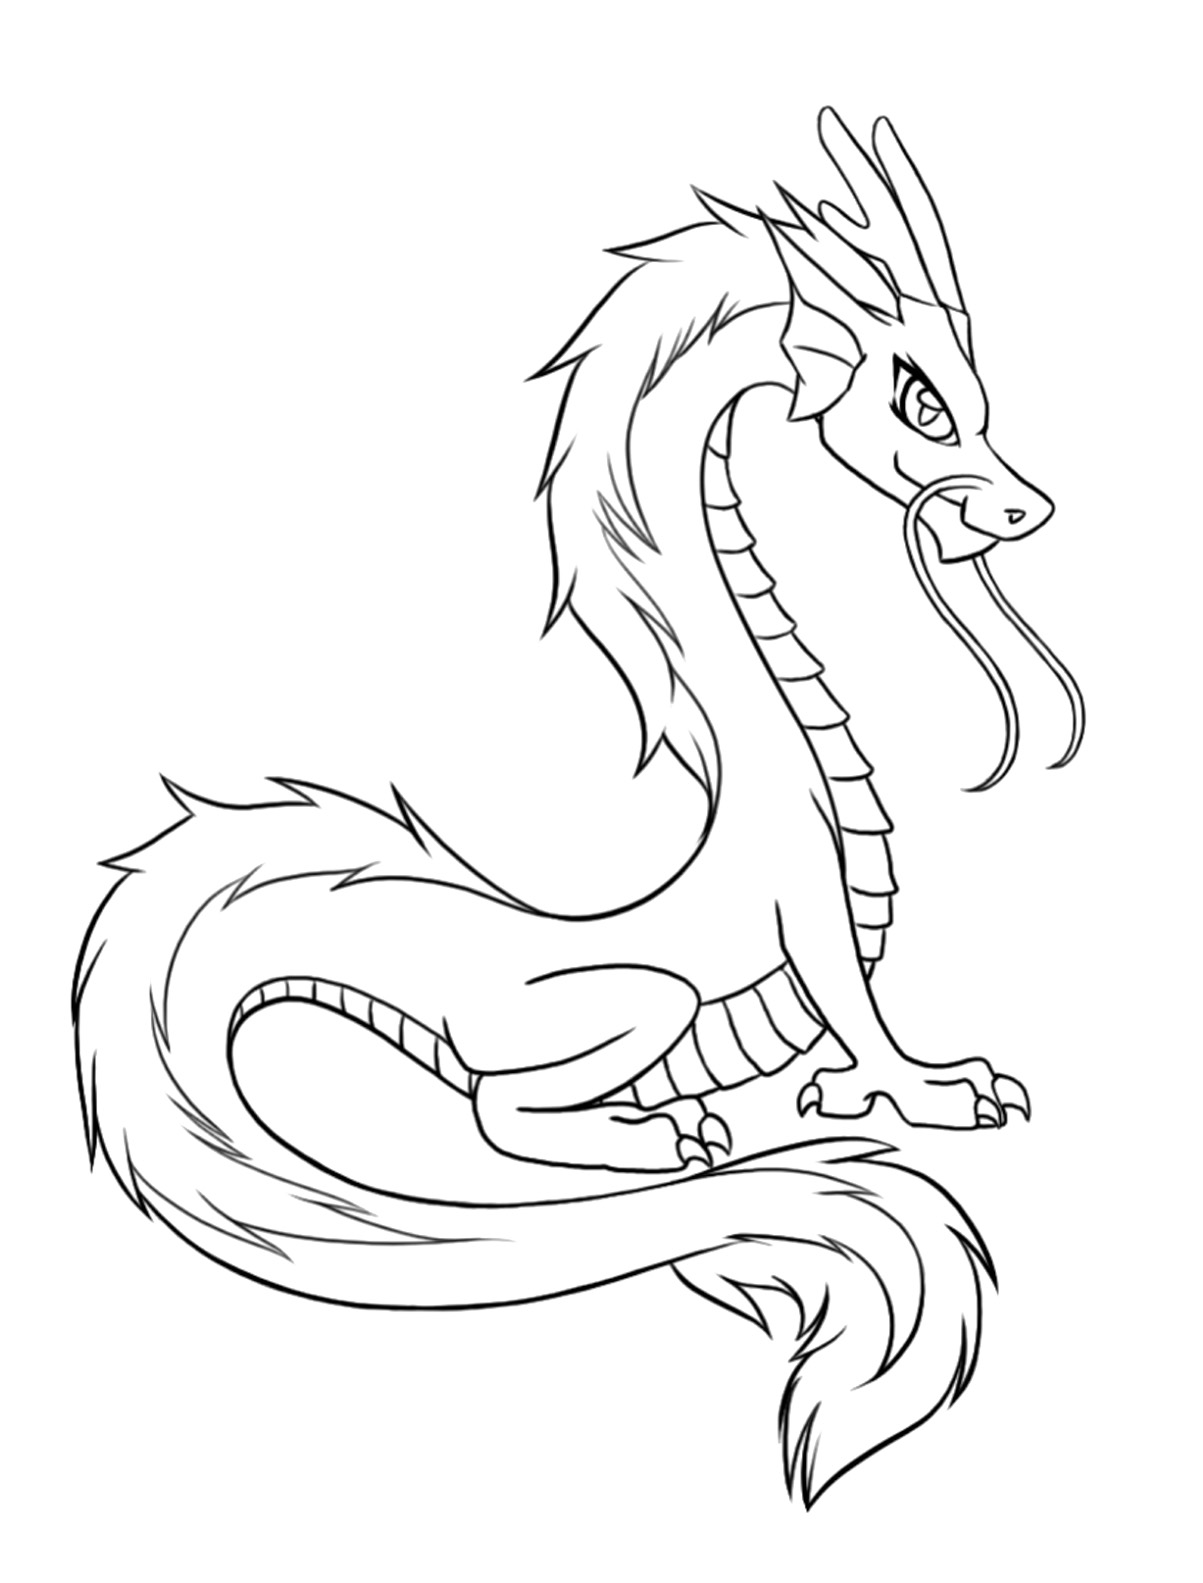 dragon-coloring-pages-printable-01